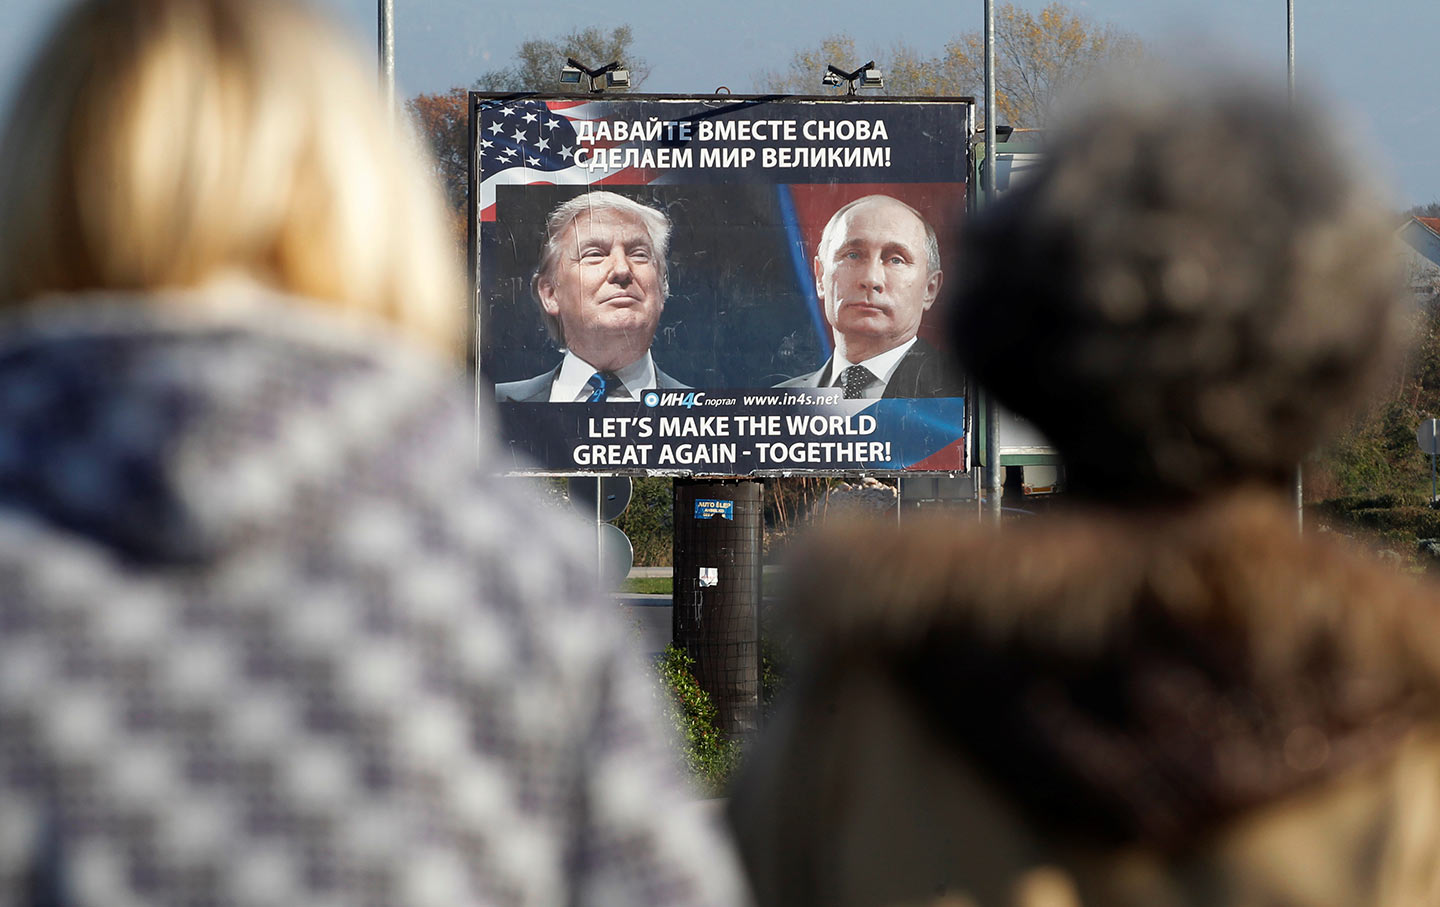 Putin Trump billboard